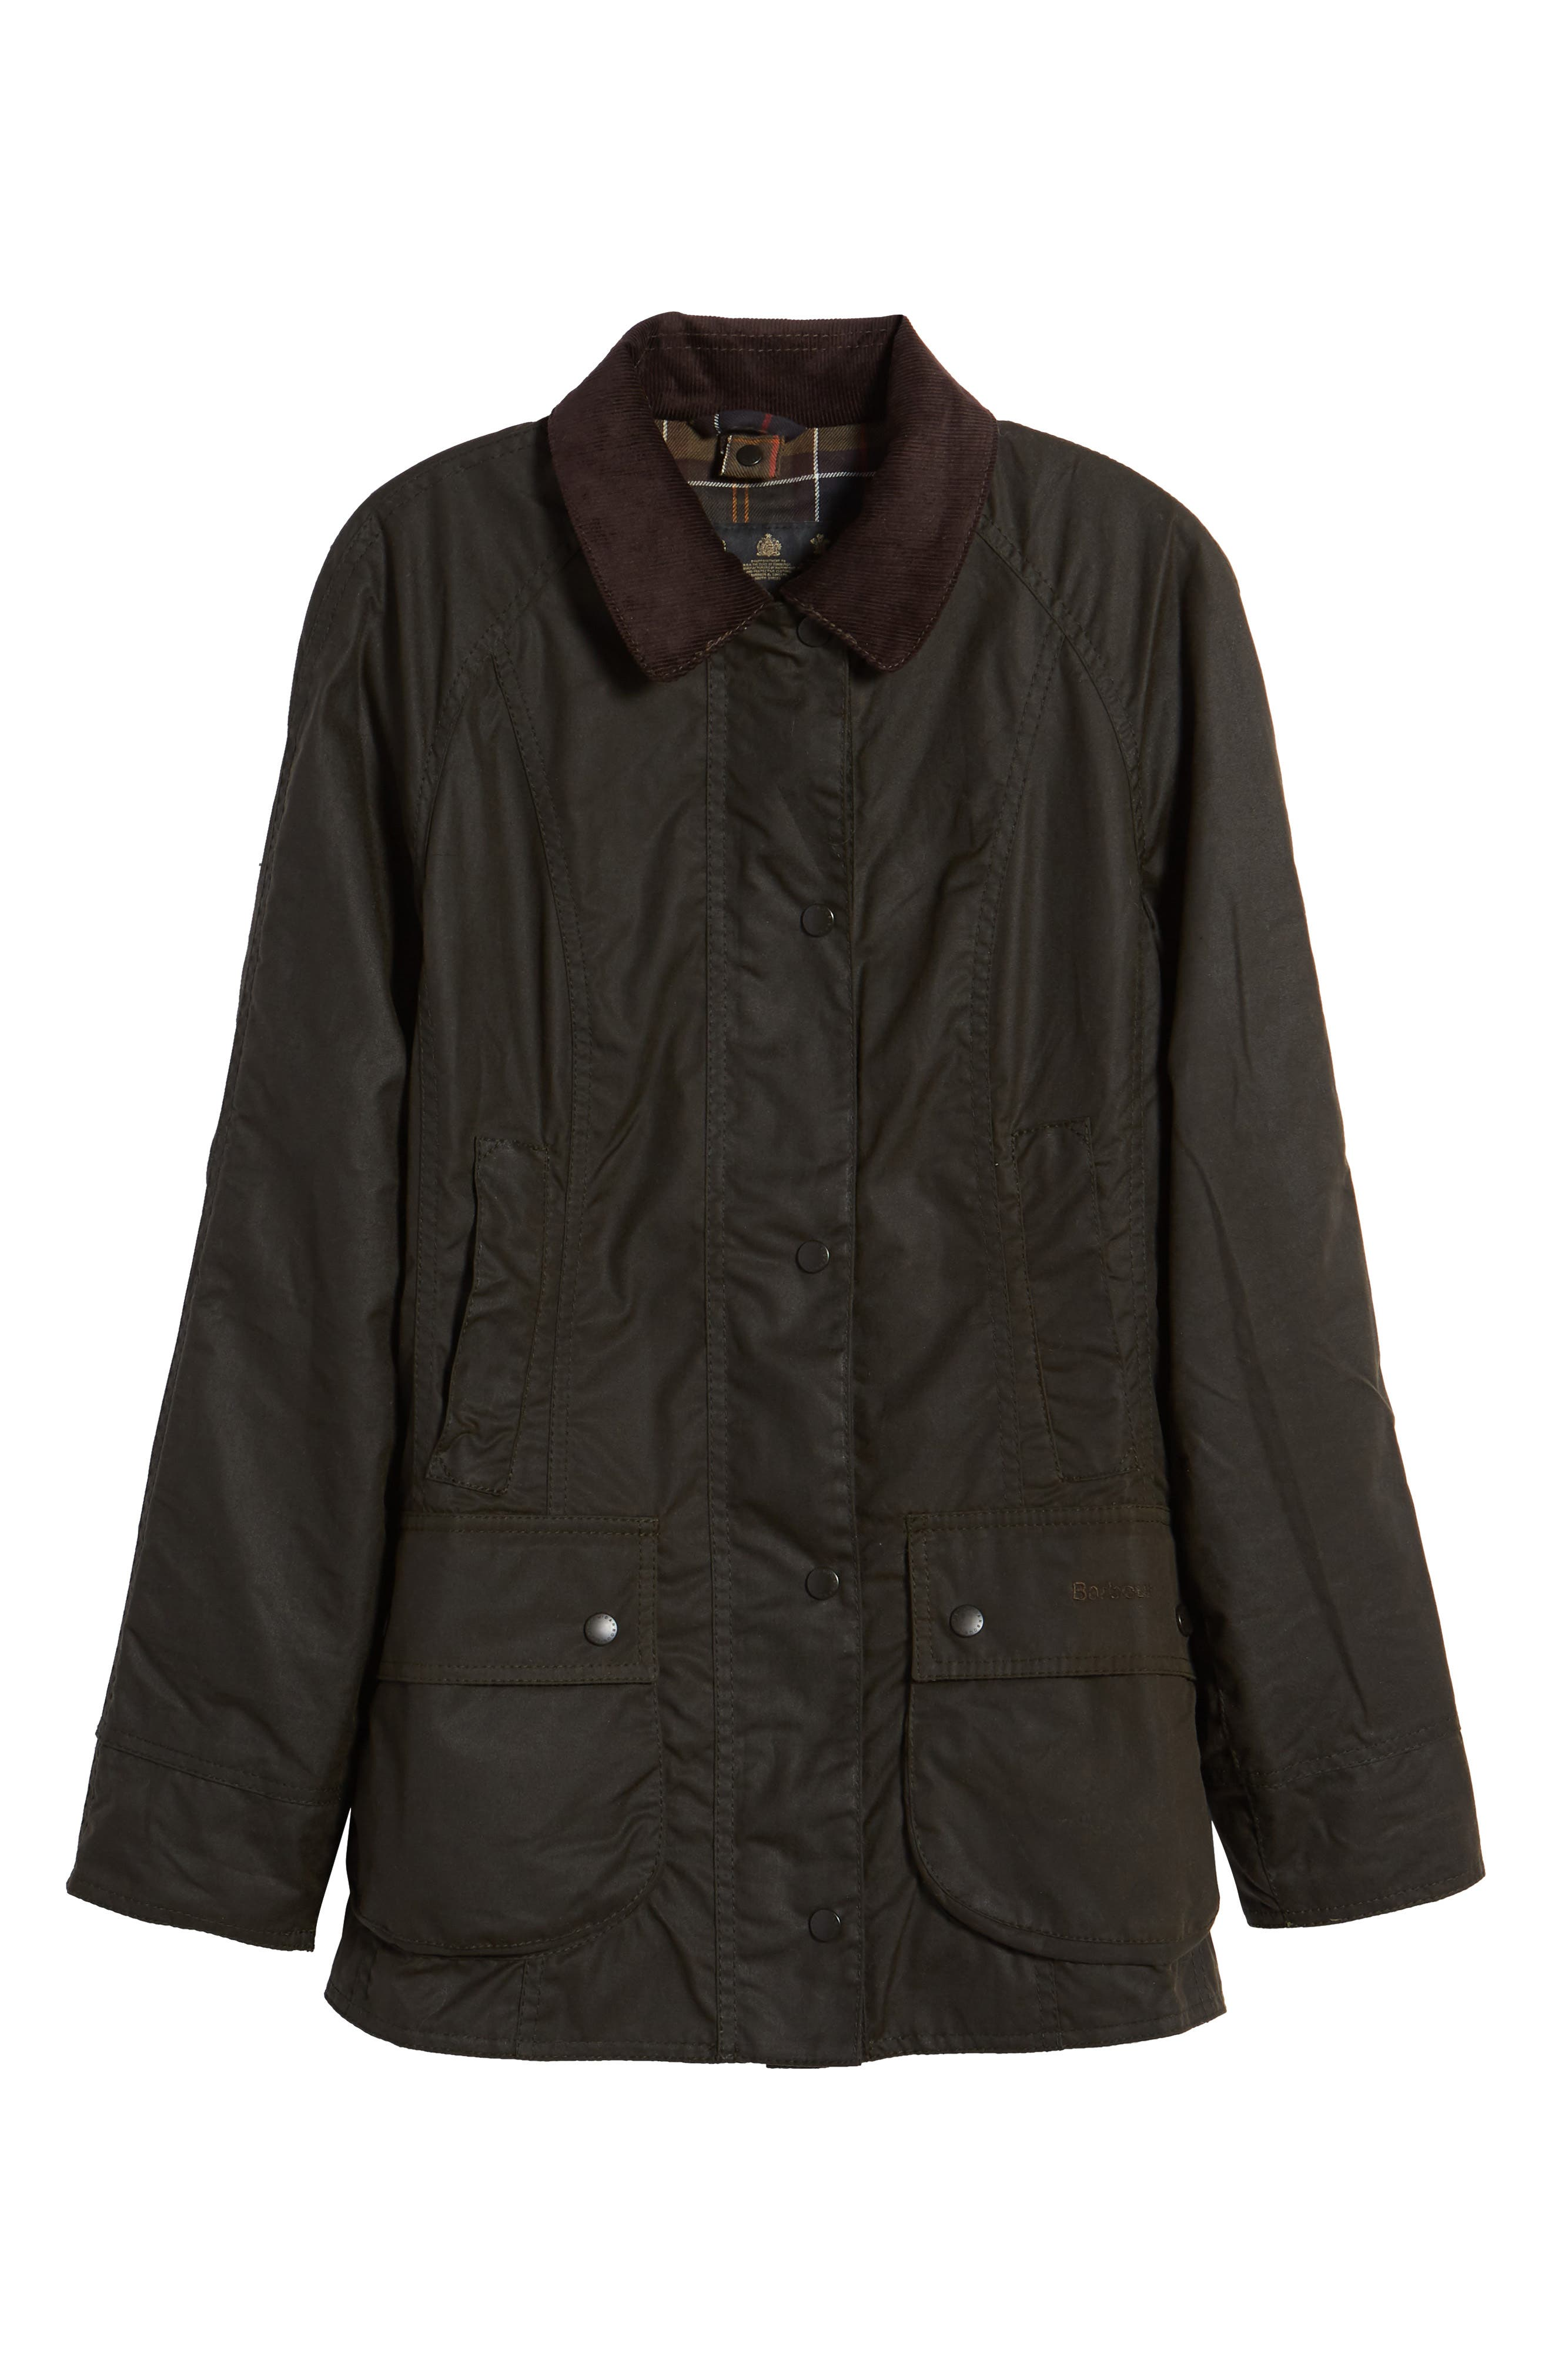 BARBOUR, Beadnell Waxed Cotton Jacket, Alternate thumbnail 6, color, 300